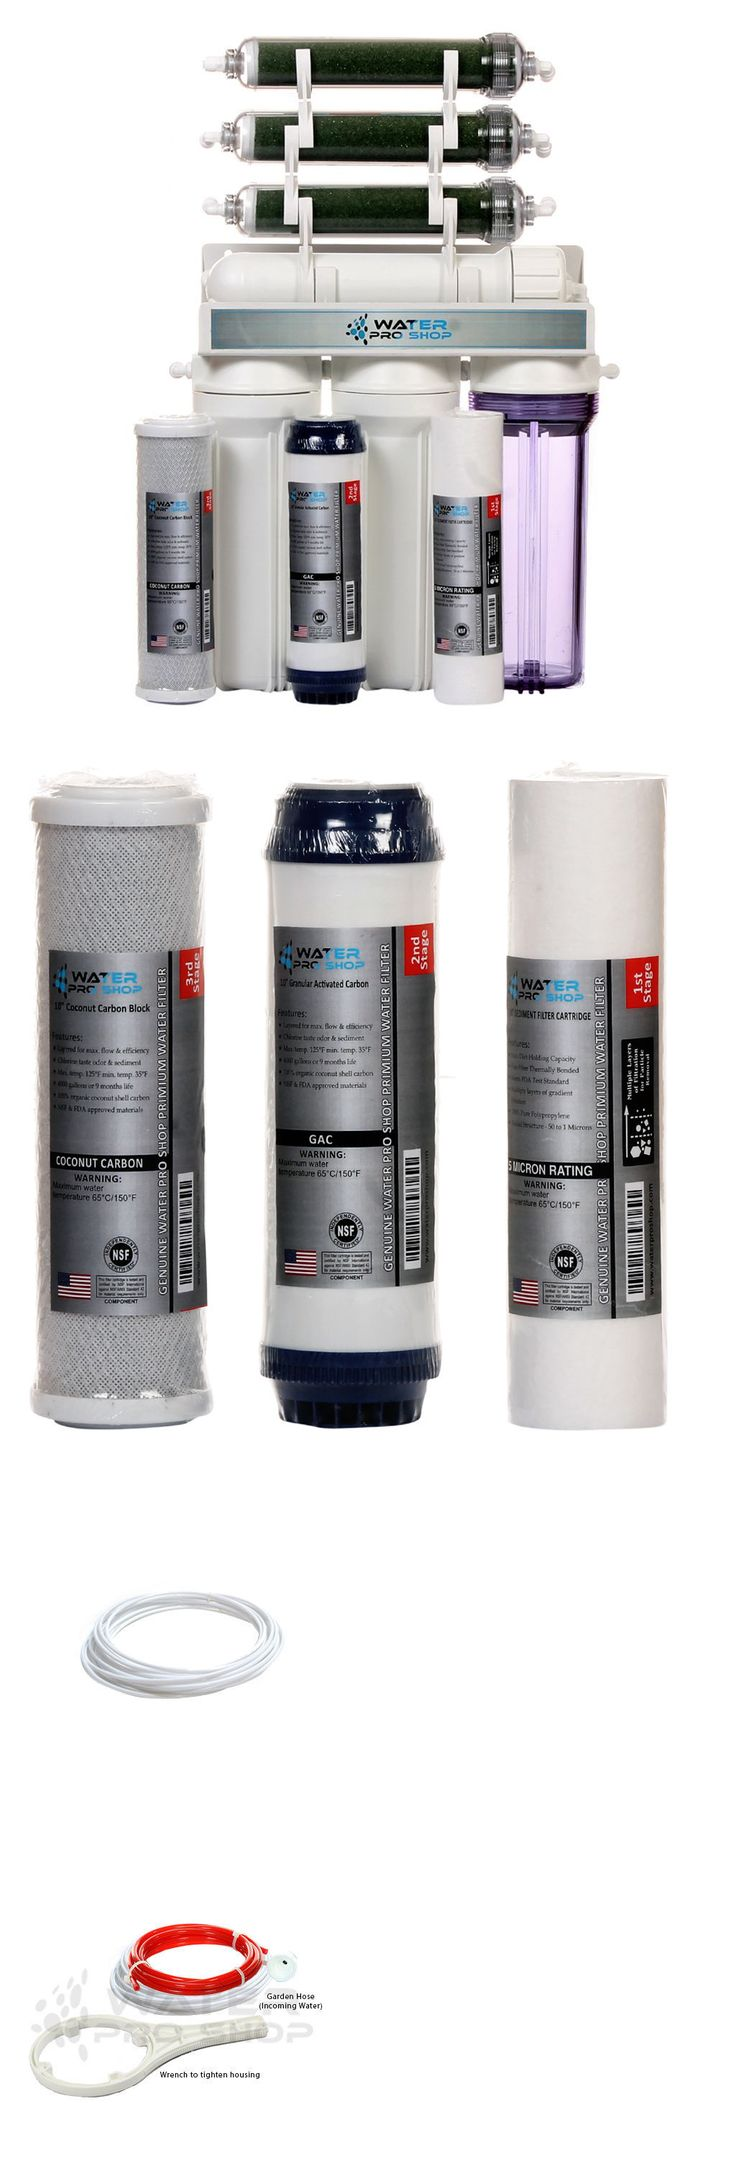 Reverse Osmosis and Deionization 77658: 7 Stage Aquarium Reef/Deionization-Reverse Osmosis (Ro/Di) Water System | 75 Gpd BUY IT NOW ONLY: $119.99